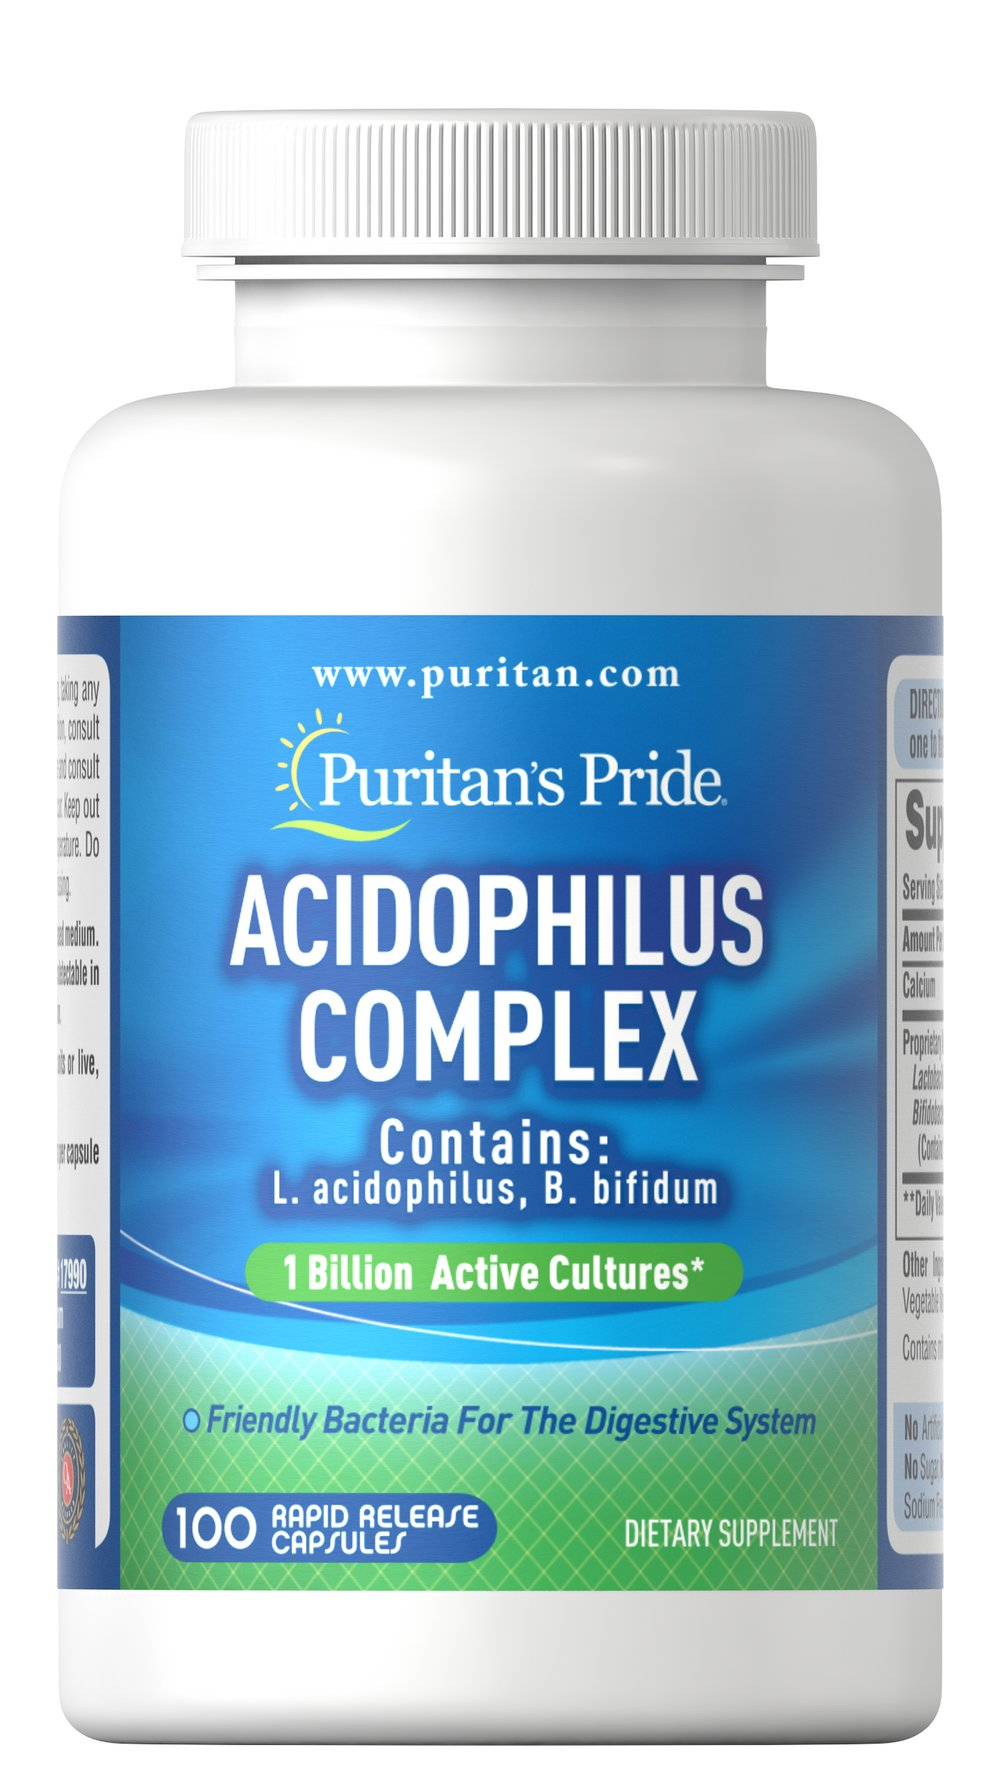 Probiotic Acidophilus Complex <p>Supports Digestive and Intestinal Health**</p><p>1 Billion active cultures per capsule at time of manufacture</p><p>Contains L. Acidophilus and B. bifidum</p><p>Acidophilus supports the healthy functioning of the intestinal system by promoting a favorable environment for the absorption of nutrients.** Most digestion takes place in the intestines so it is important to maintain intestinal health.  **Our Acidophilus